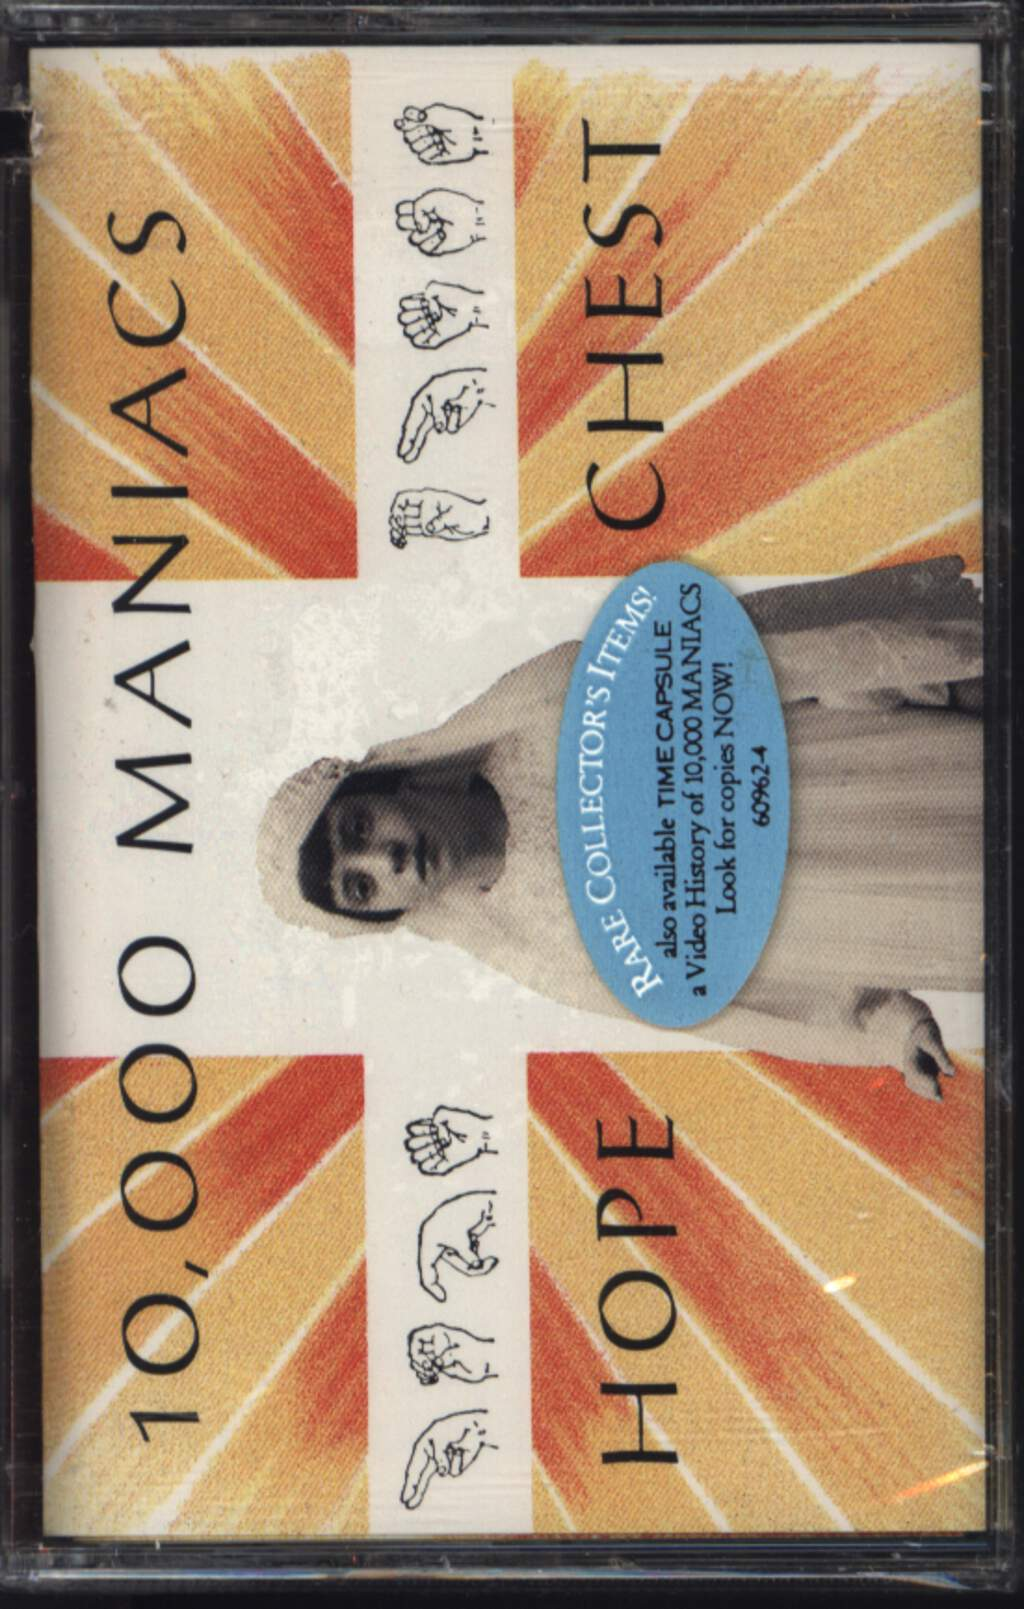 10.000 Maniacs: Hope Chest (The Fredonia Recordings 1982 - 1983), Compact Cassette